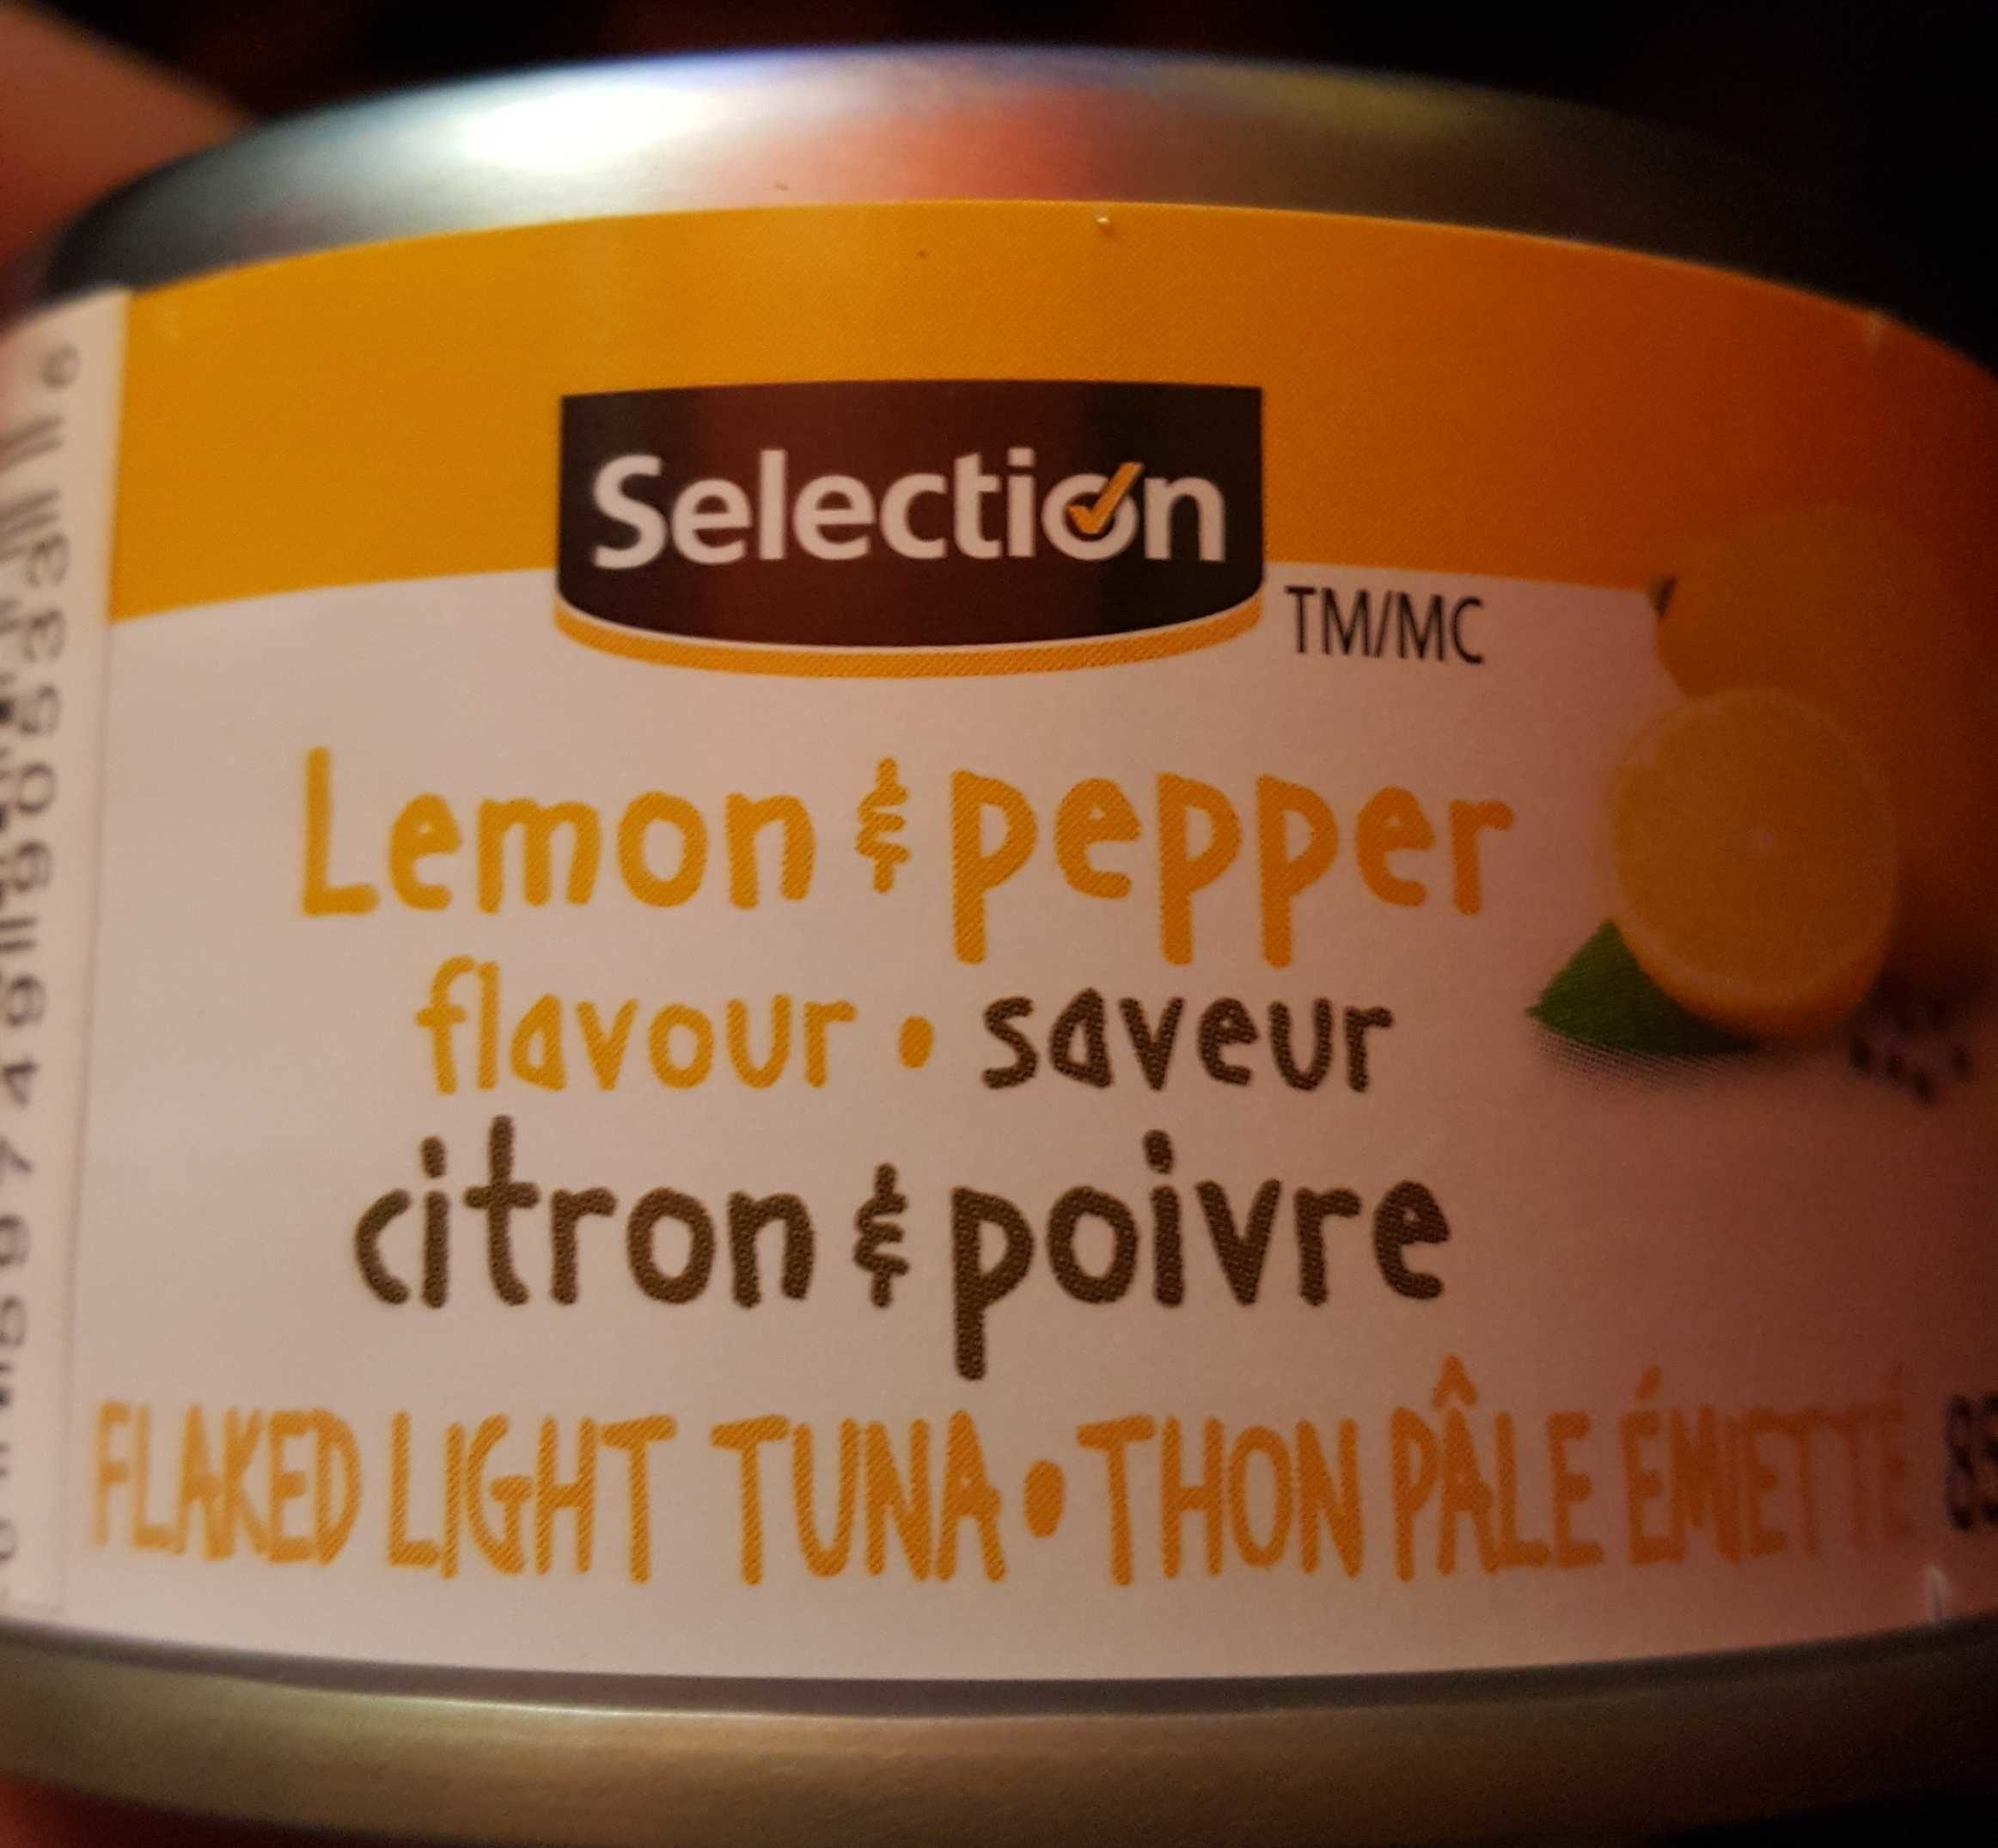 Lemon Pepper Tuna - Produit - en